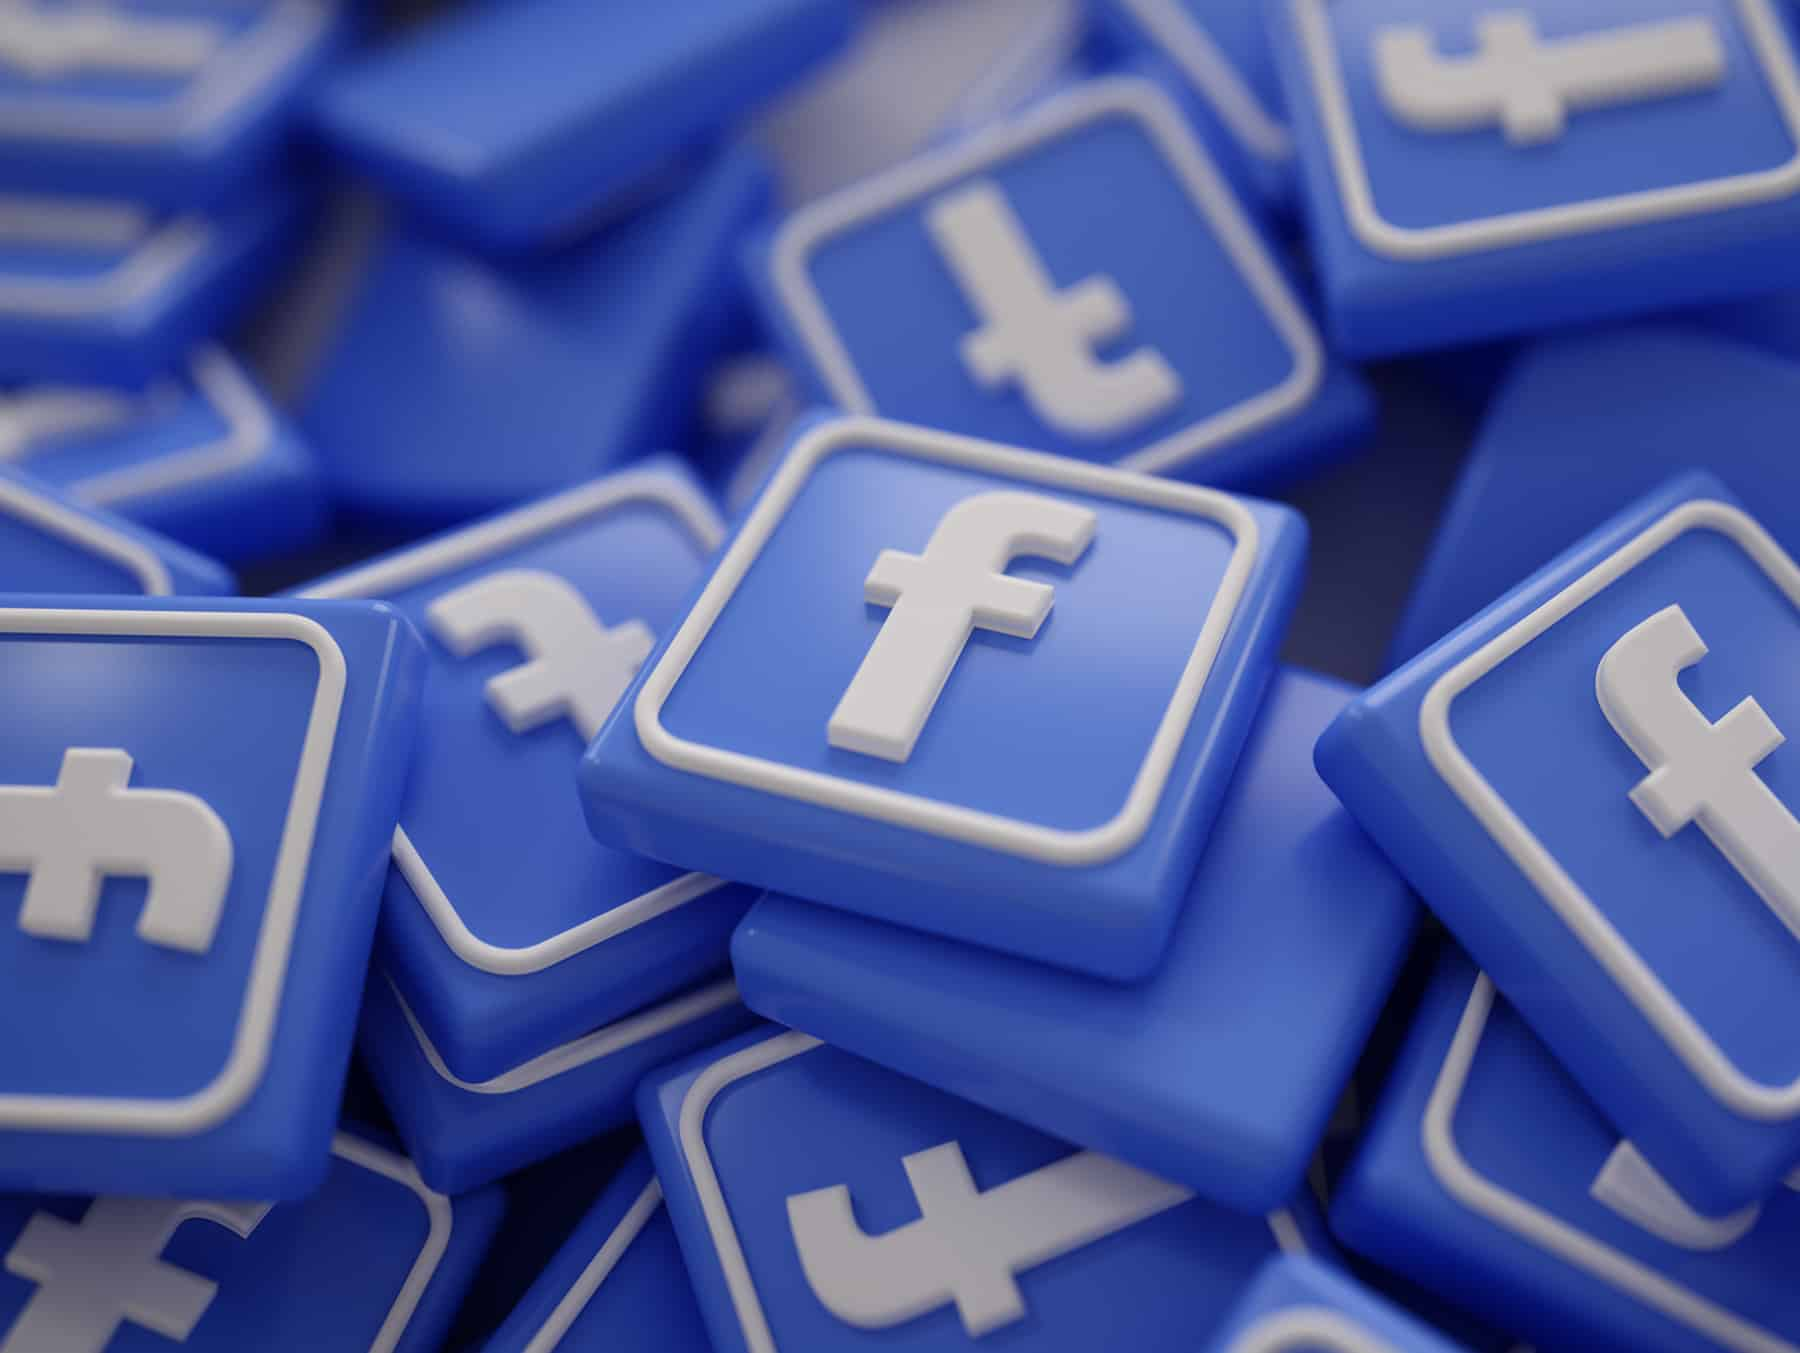 New Facebook Tools You Should Know New Facebook Tools You Should Know